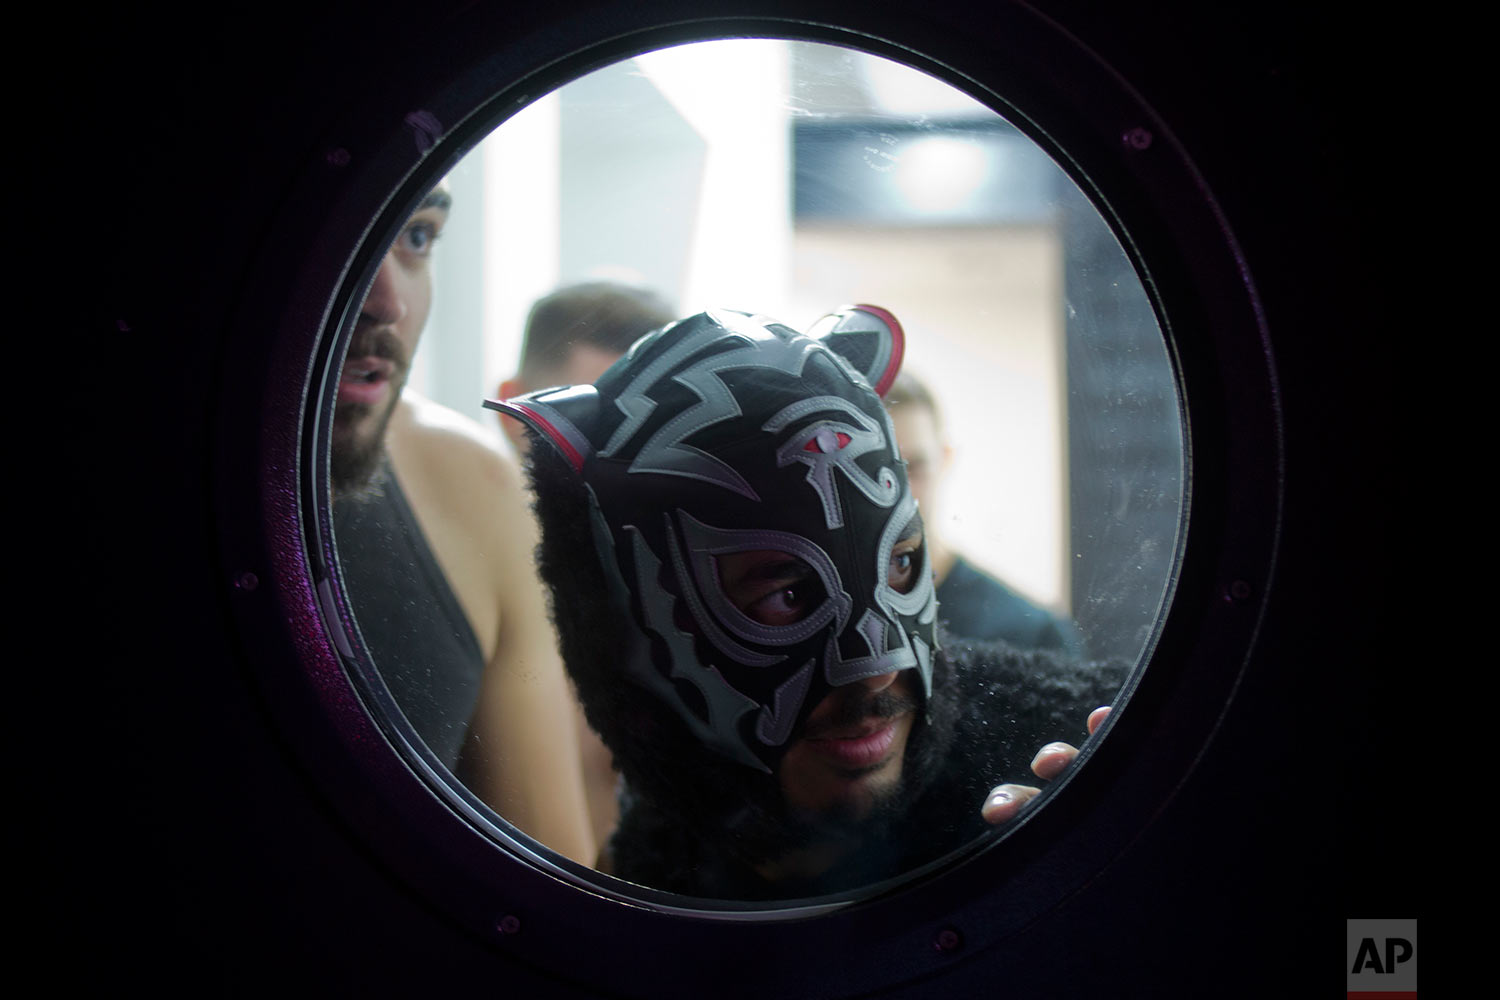 An Israeli Wrestler waits to enter the ring during The Rage Wrestling Mega Show in Tel Aviv, Israel, Sunday, July 9, 2017. (AP Photo/Ariel Schalit)